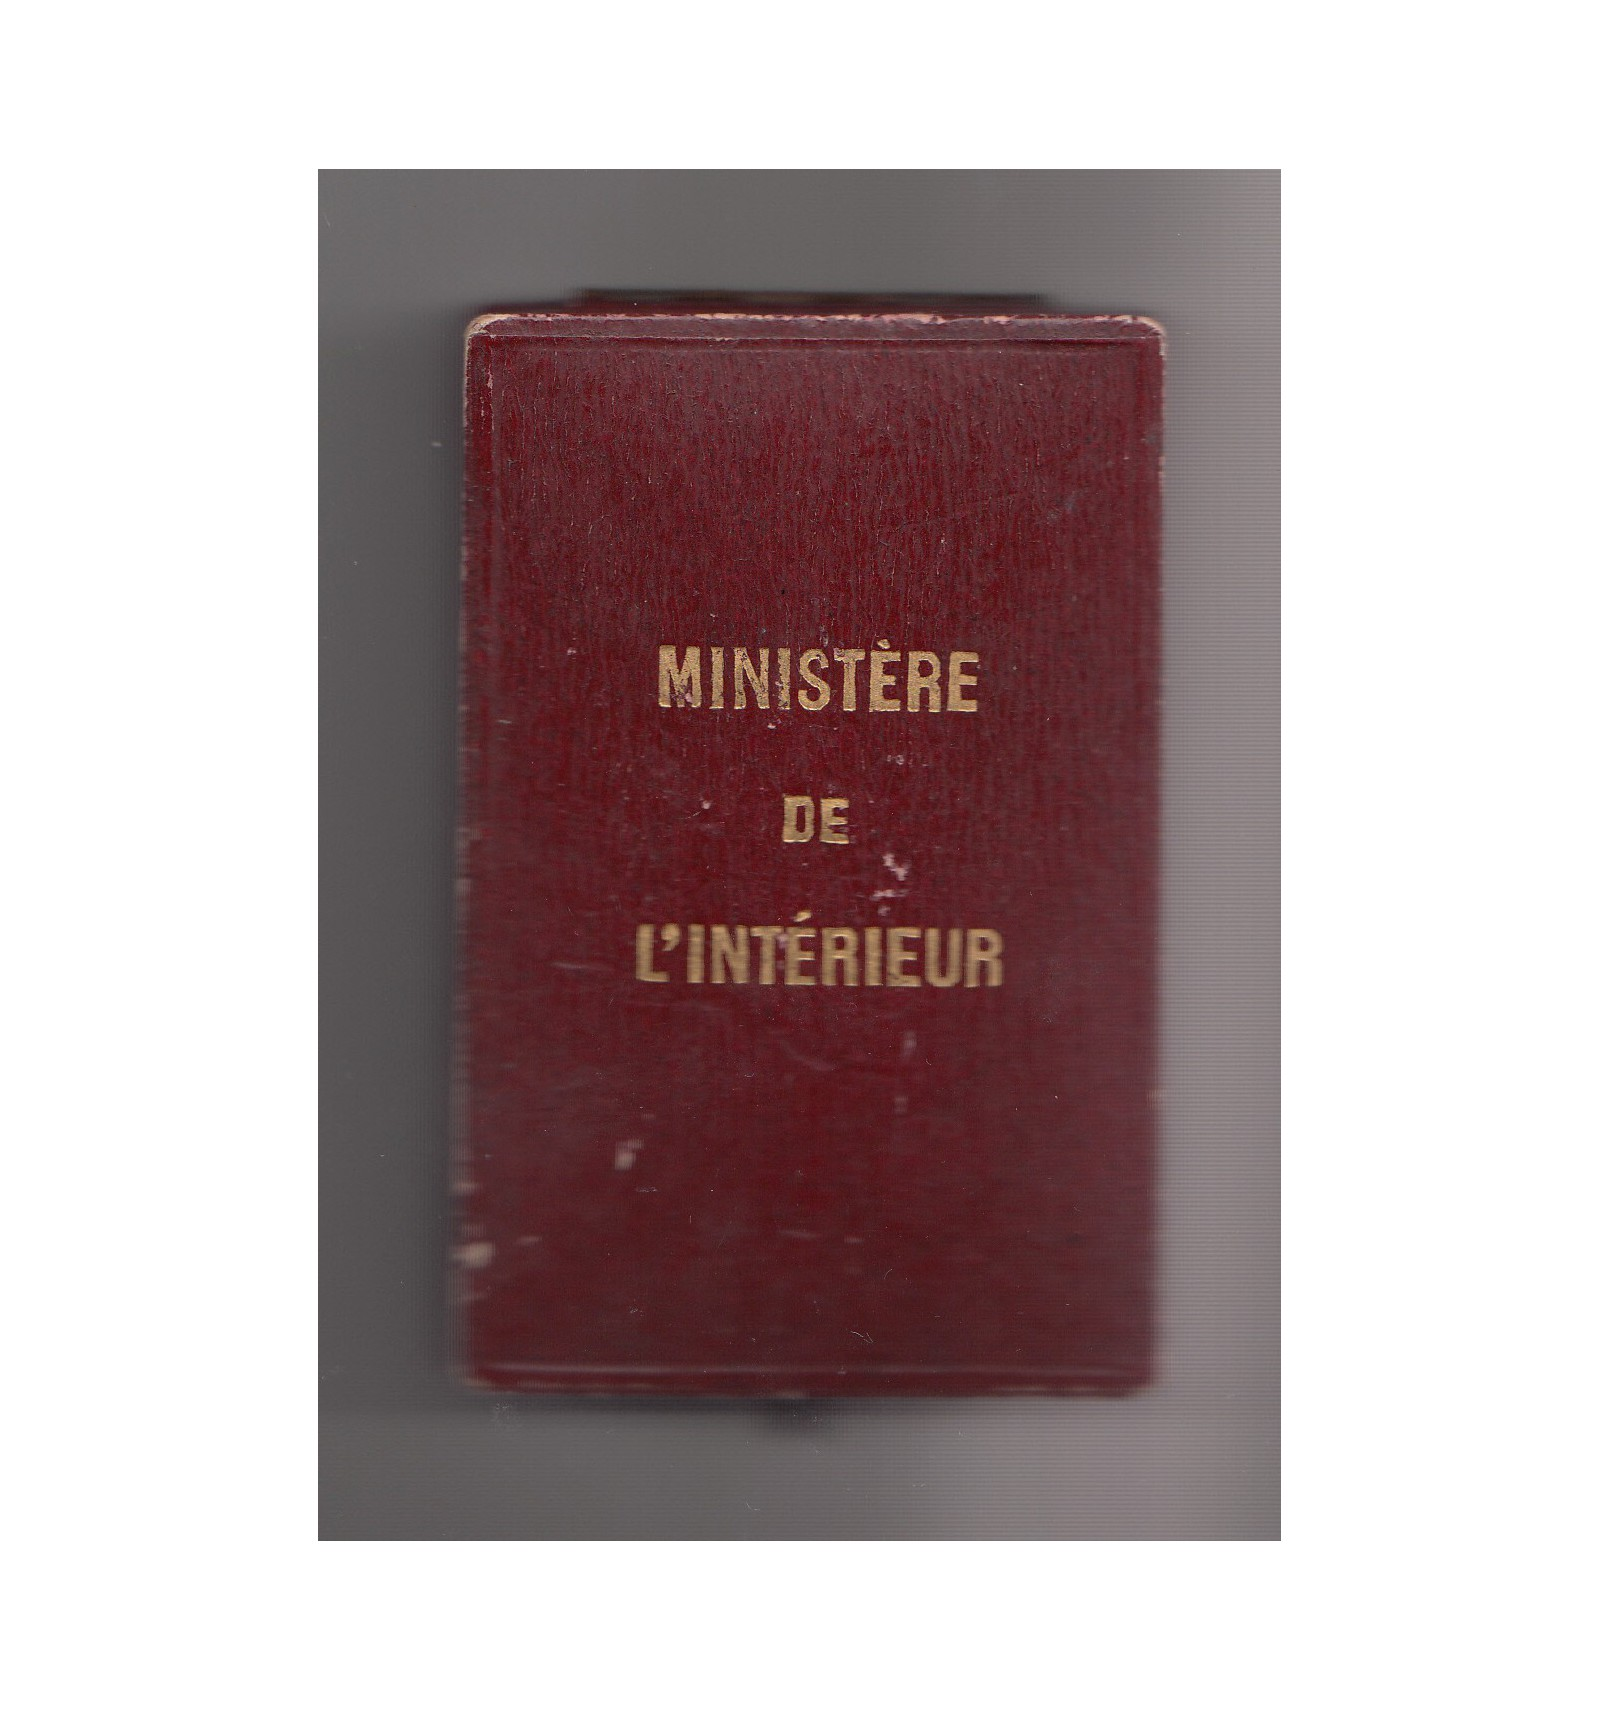 Minist re de l 39 int rieur m daille d 39 or pid mies 1912 for Minister de l interieur